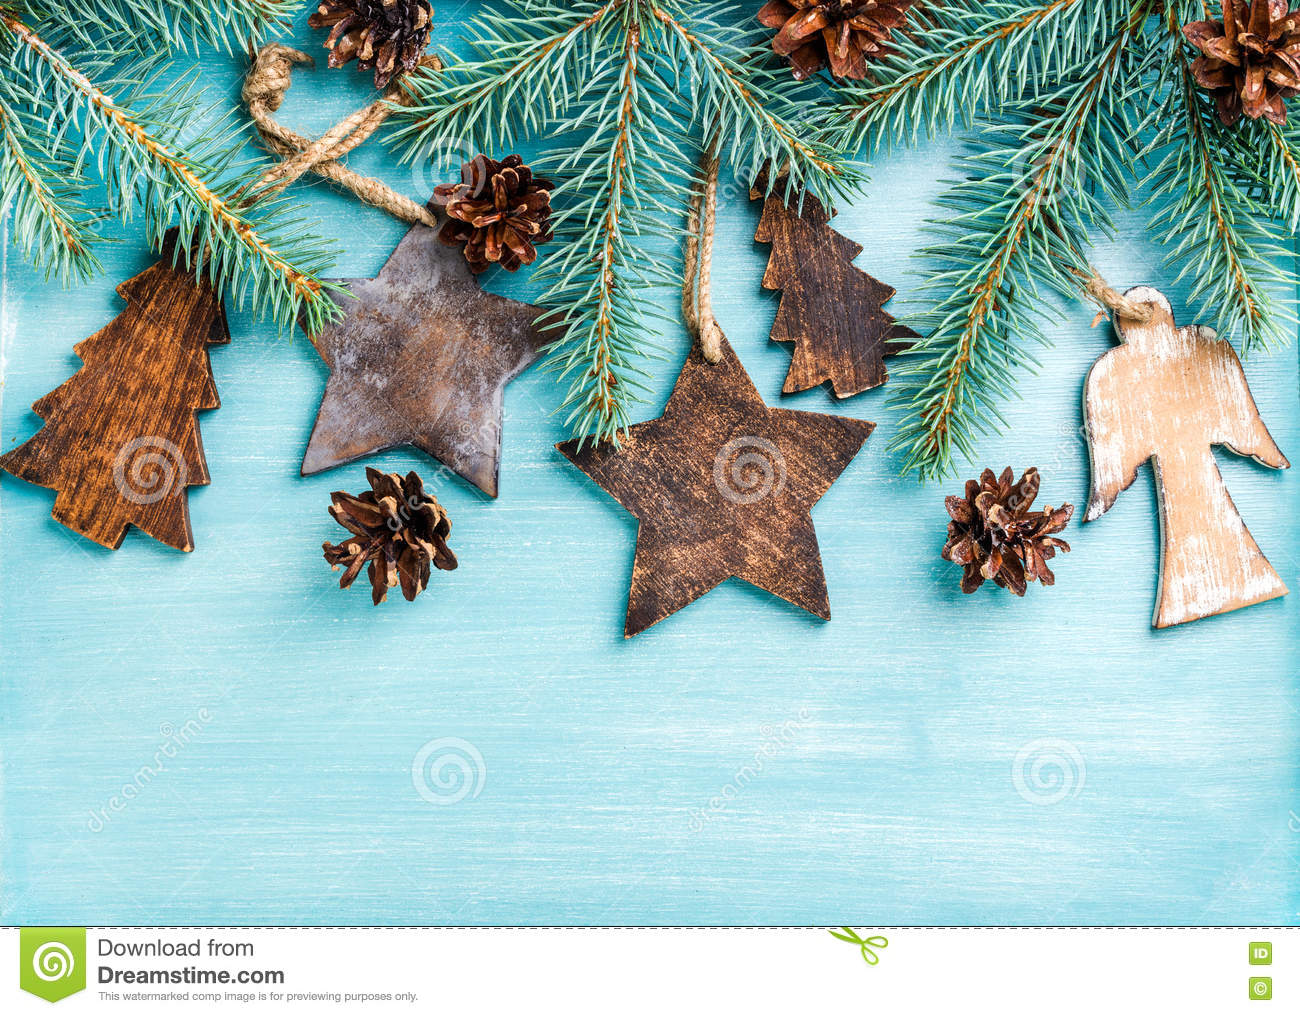 New Year or Christmas background: wooden angels, stars, small fir-trees, cones and branches over blue painted backdrop